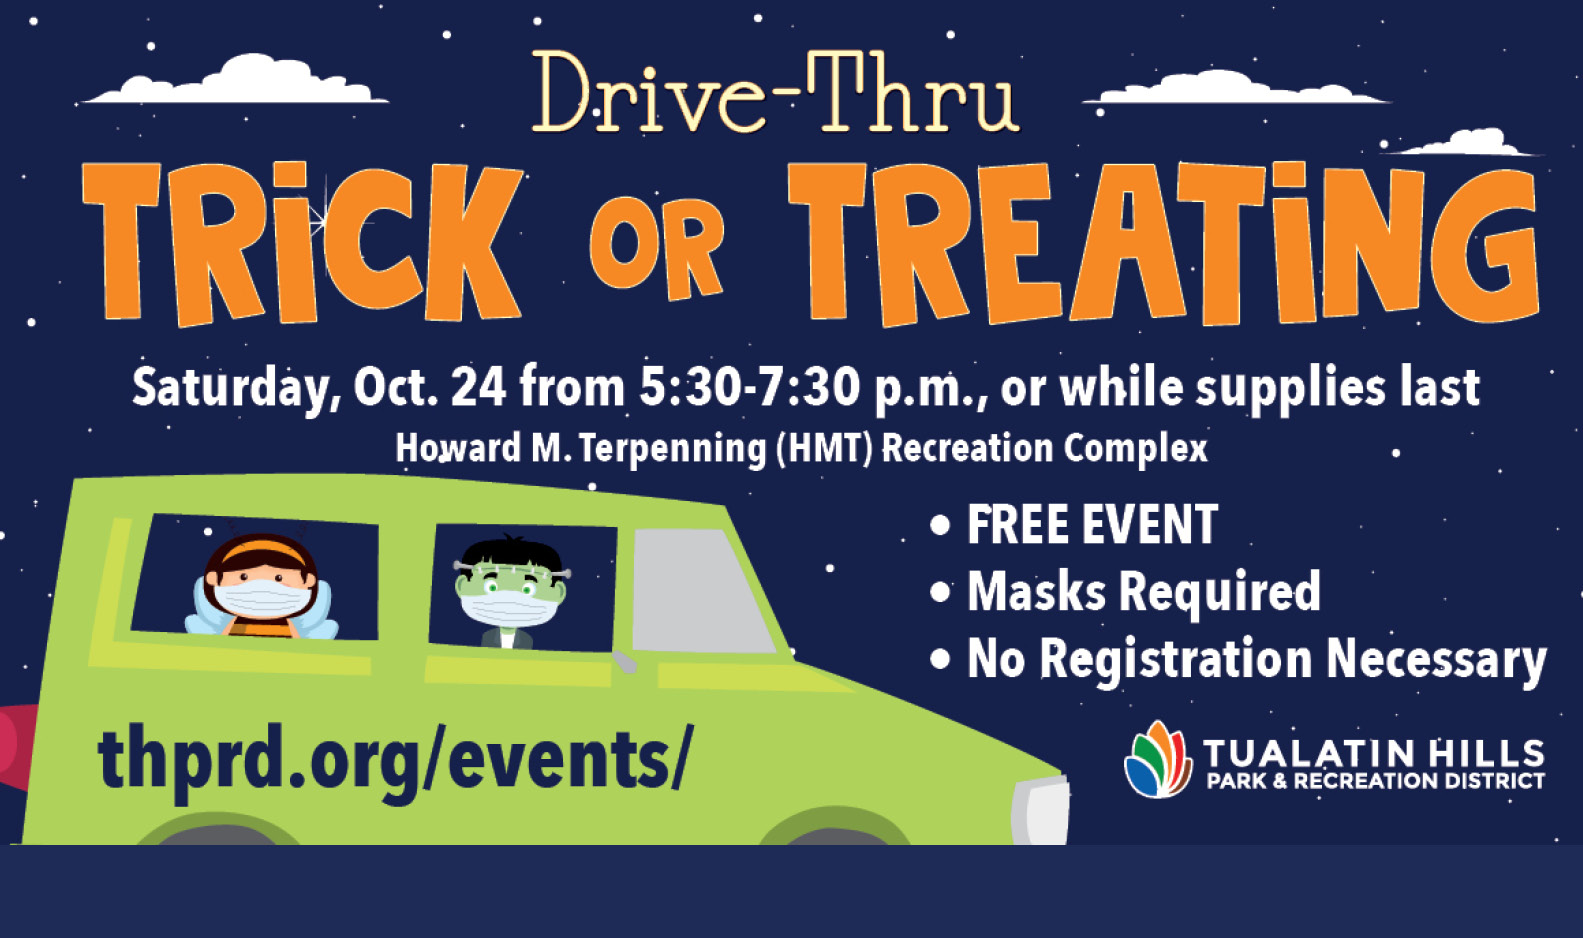 Drive-Thru Trick or Treat - Oct. 24 from 5:30-7:30 PM